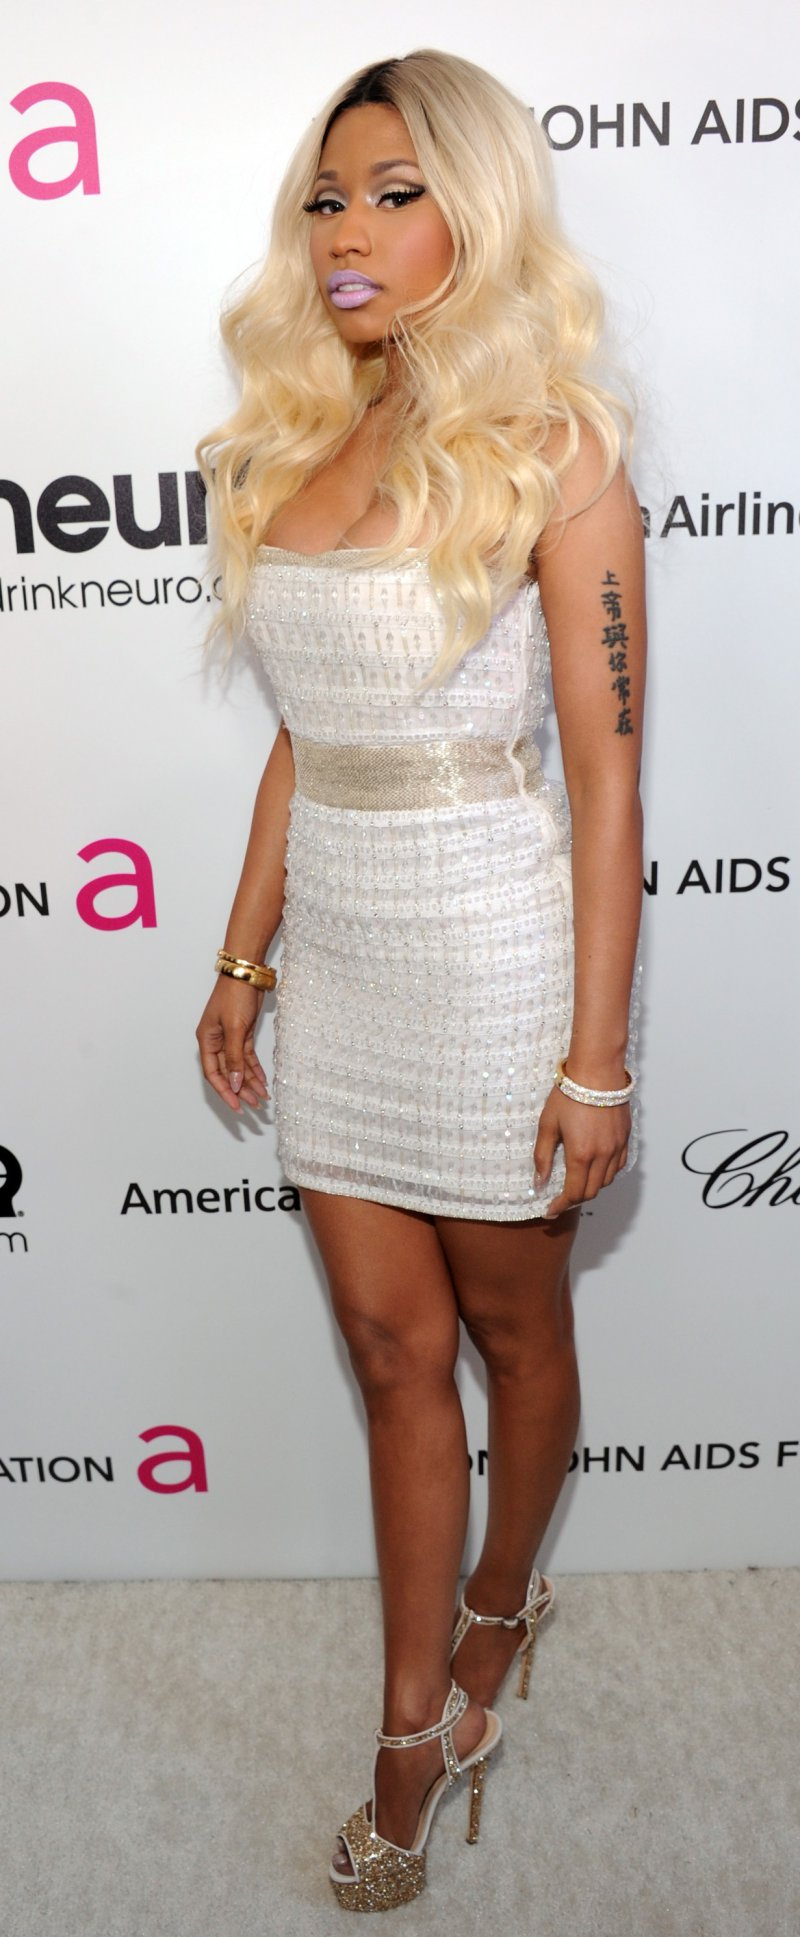 nicki-minaj-s-legs-and-feet0776184491471163185